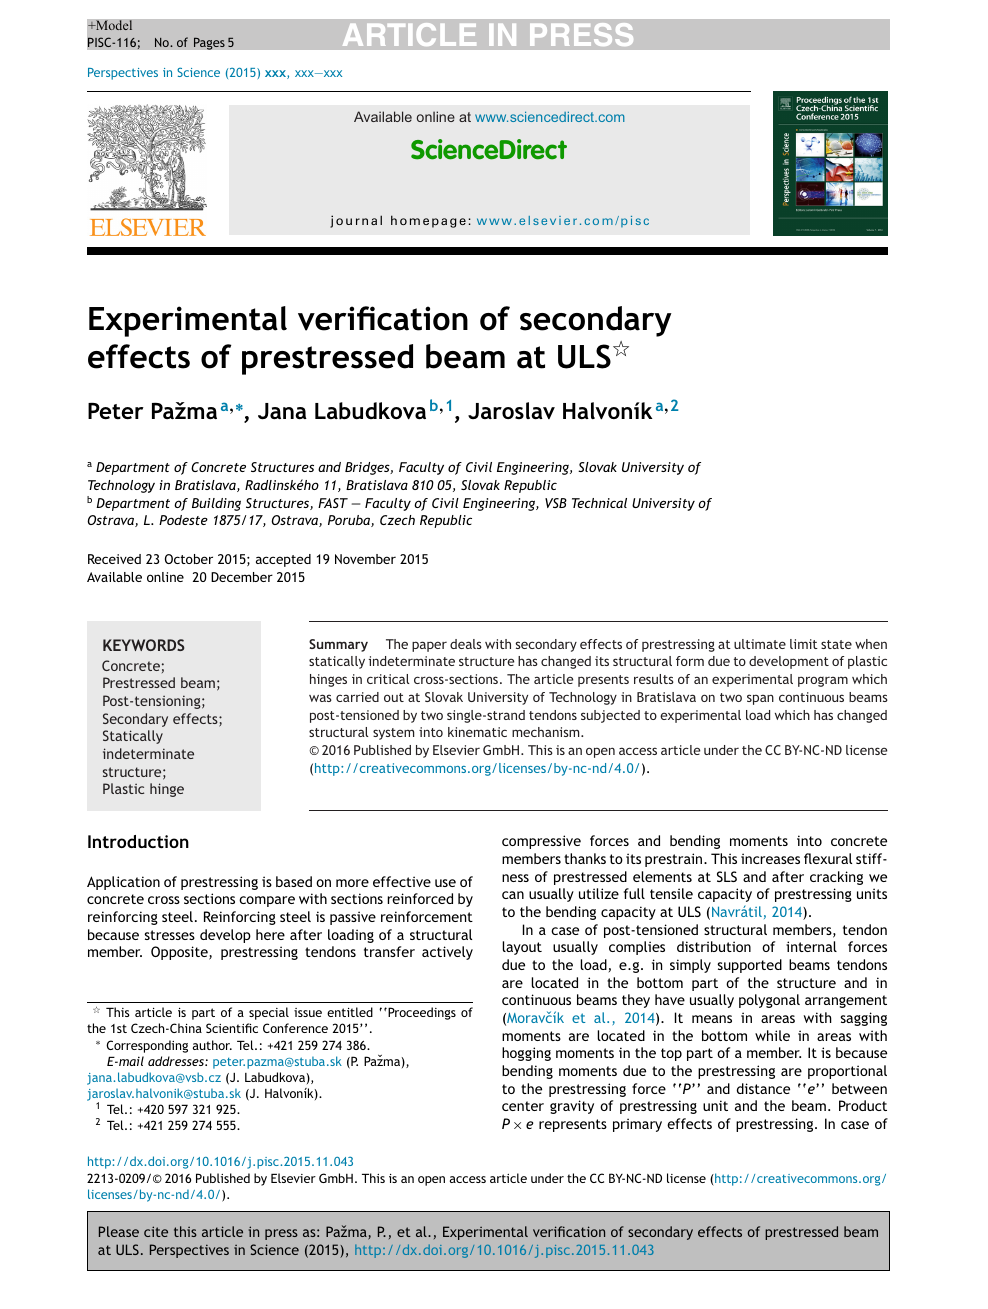 Experimental verification of secondary effects of prestressed beam